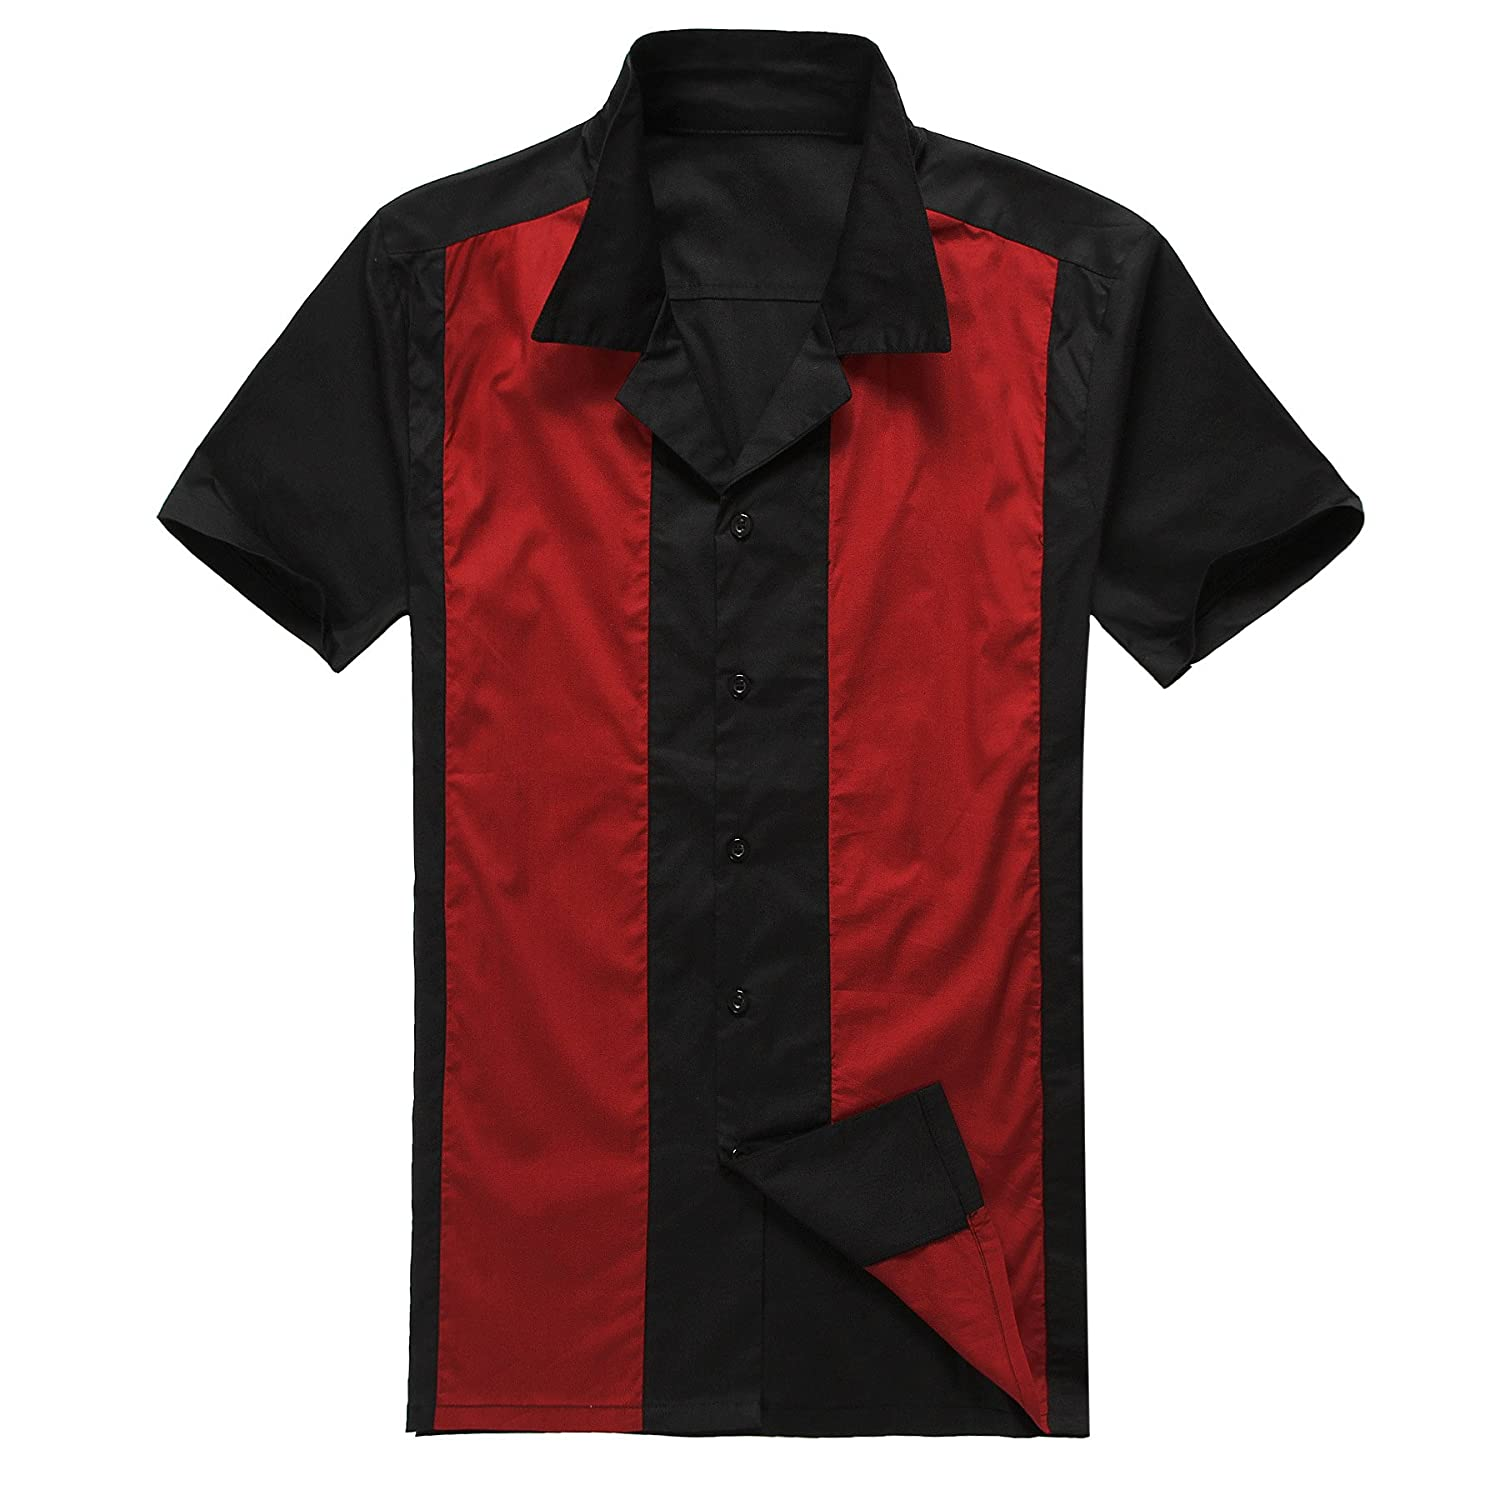 Canddow Look 50S men bowling shirt black&red vintage retro tops